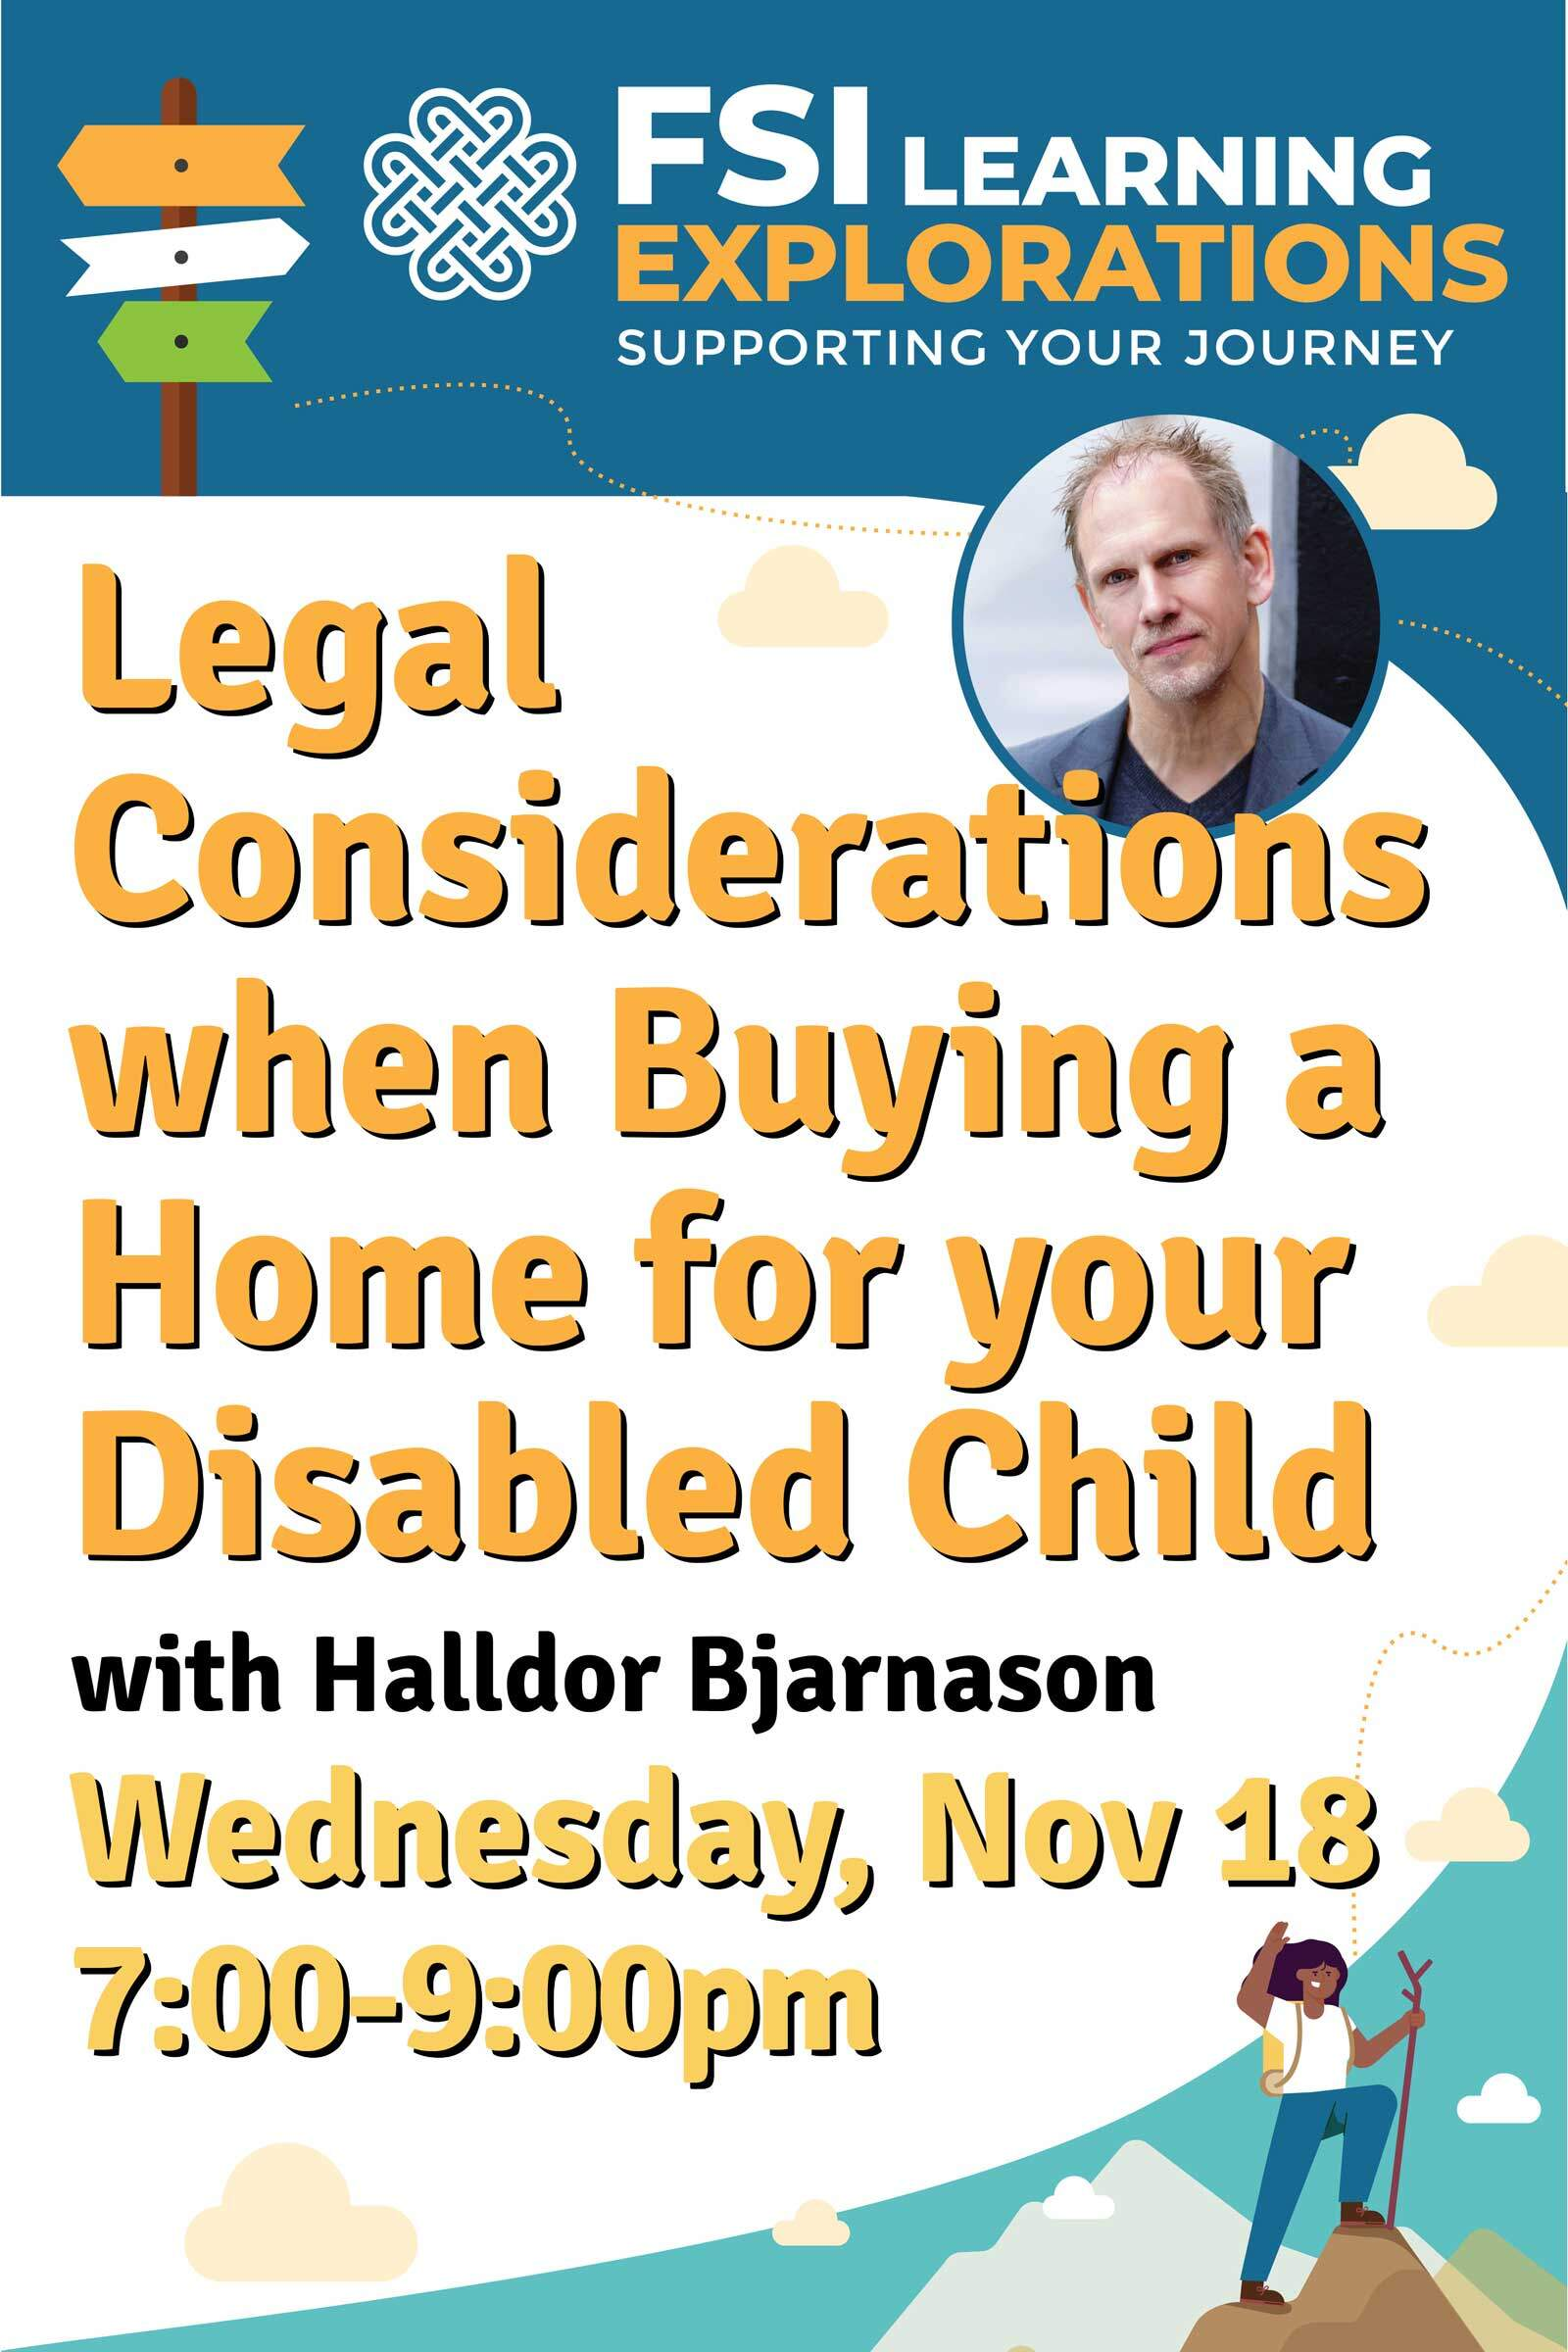 FSI Learning Explorations - Legal Considerations When Buying a Home for your Disabled Child